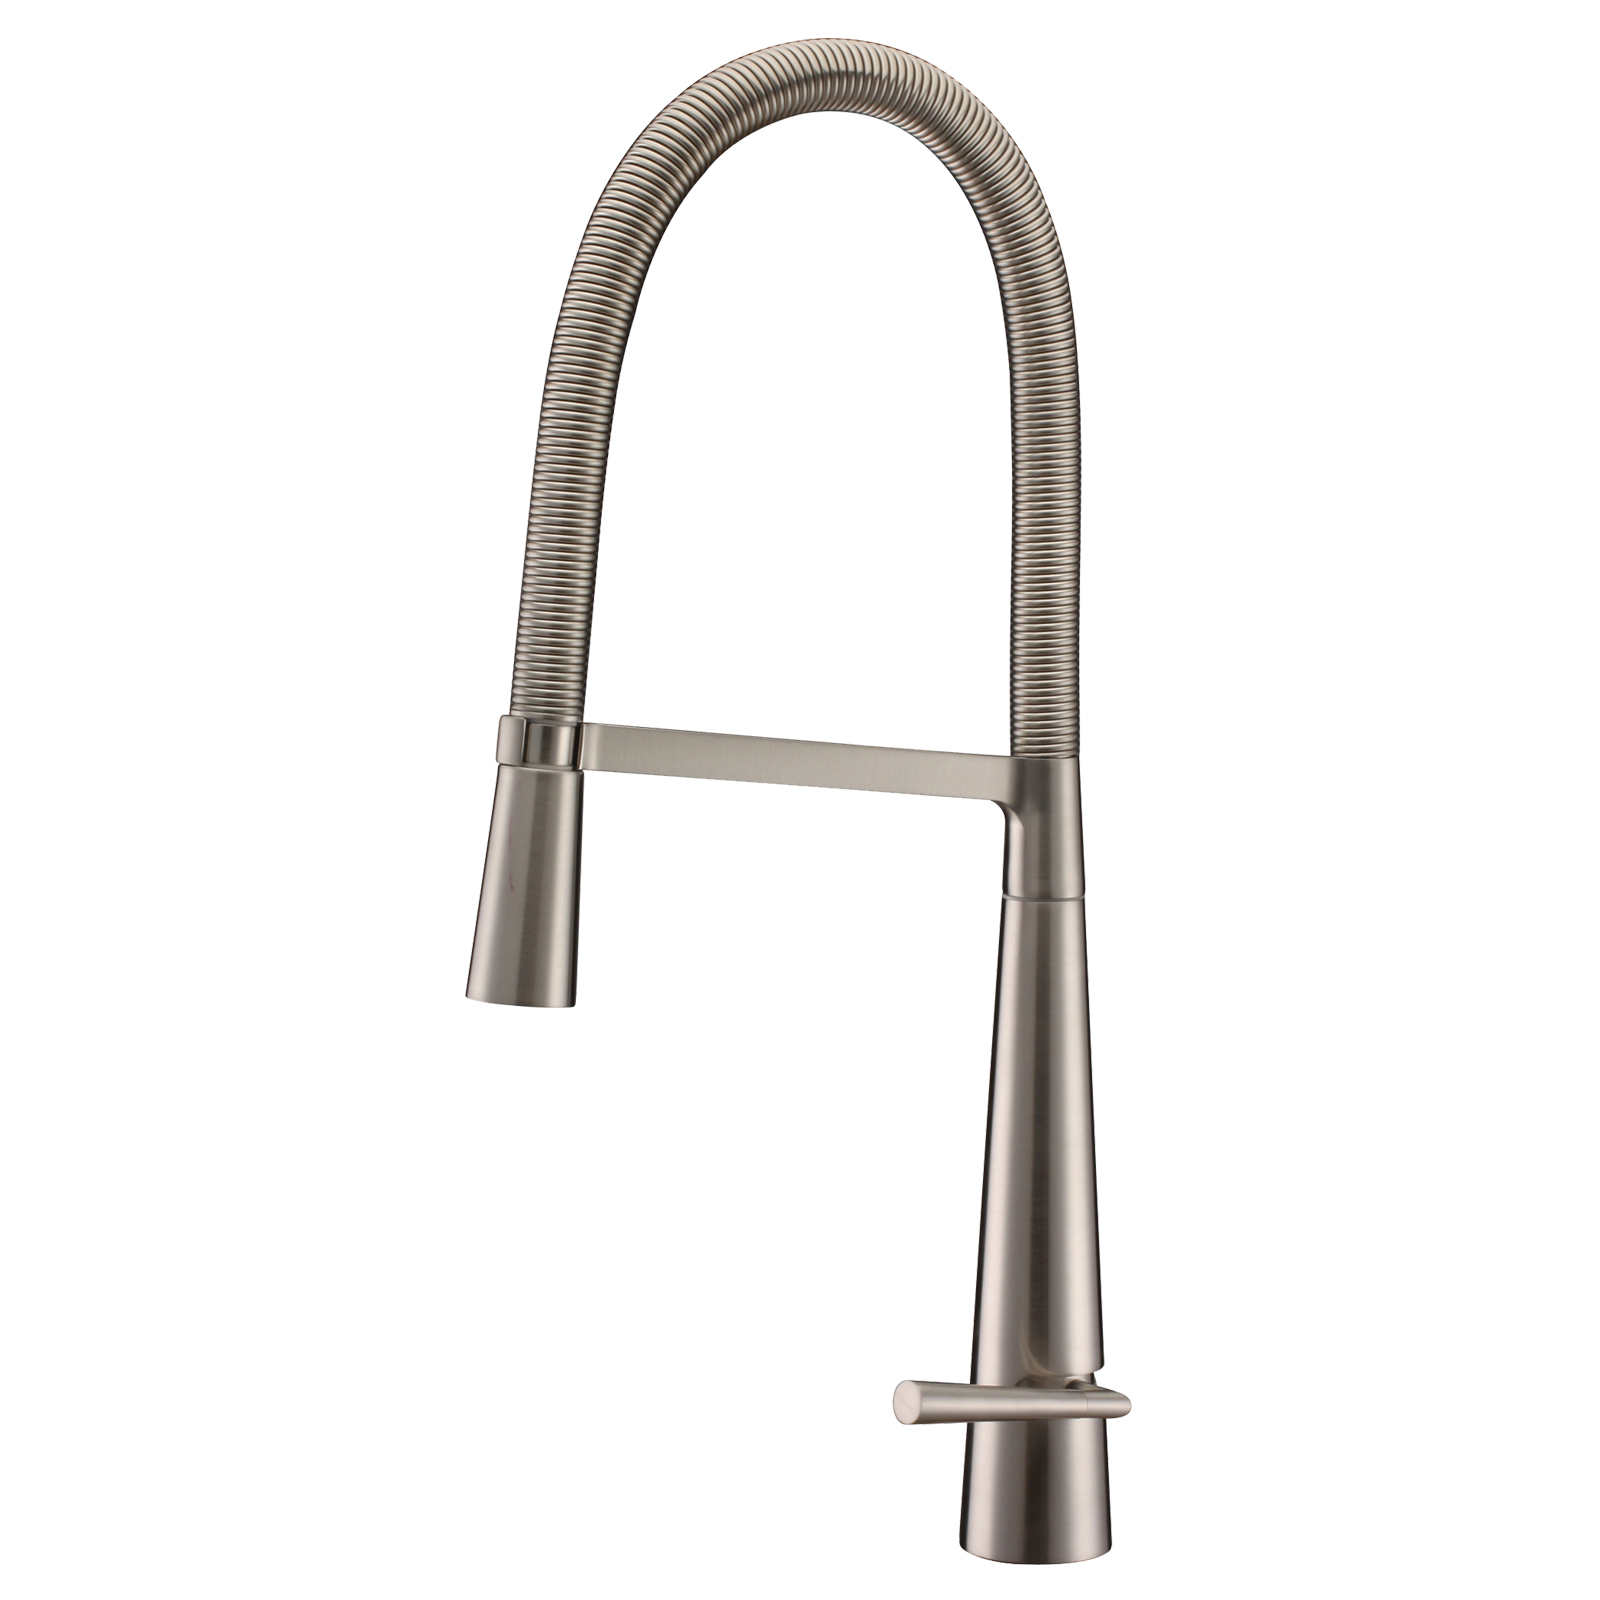 Monte Carlo Pull Out Kitchen Mixer Tap (Brushed)